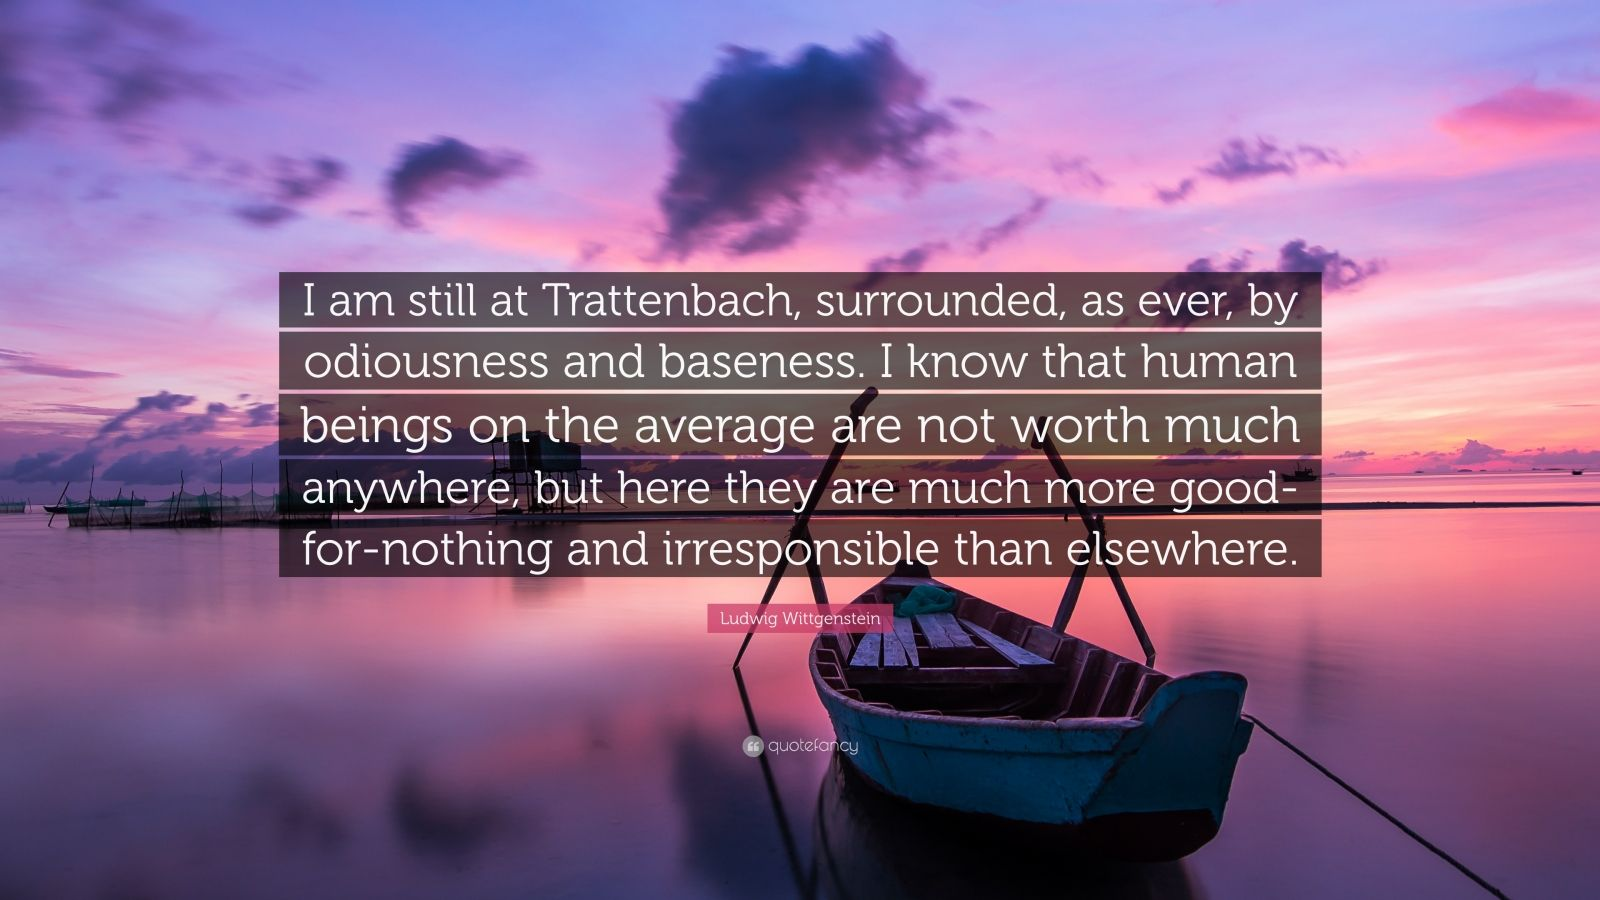 """Ludwig Wittgenstein Quote: """"I am still at Trattenbach, surrounded, as ever, by odiousness and baseness. I know that human beings on the average are not worth much anywhere, but here they are much more good-for-nothing and irresponsible than elsewhere."""""""